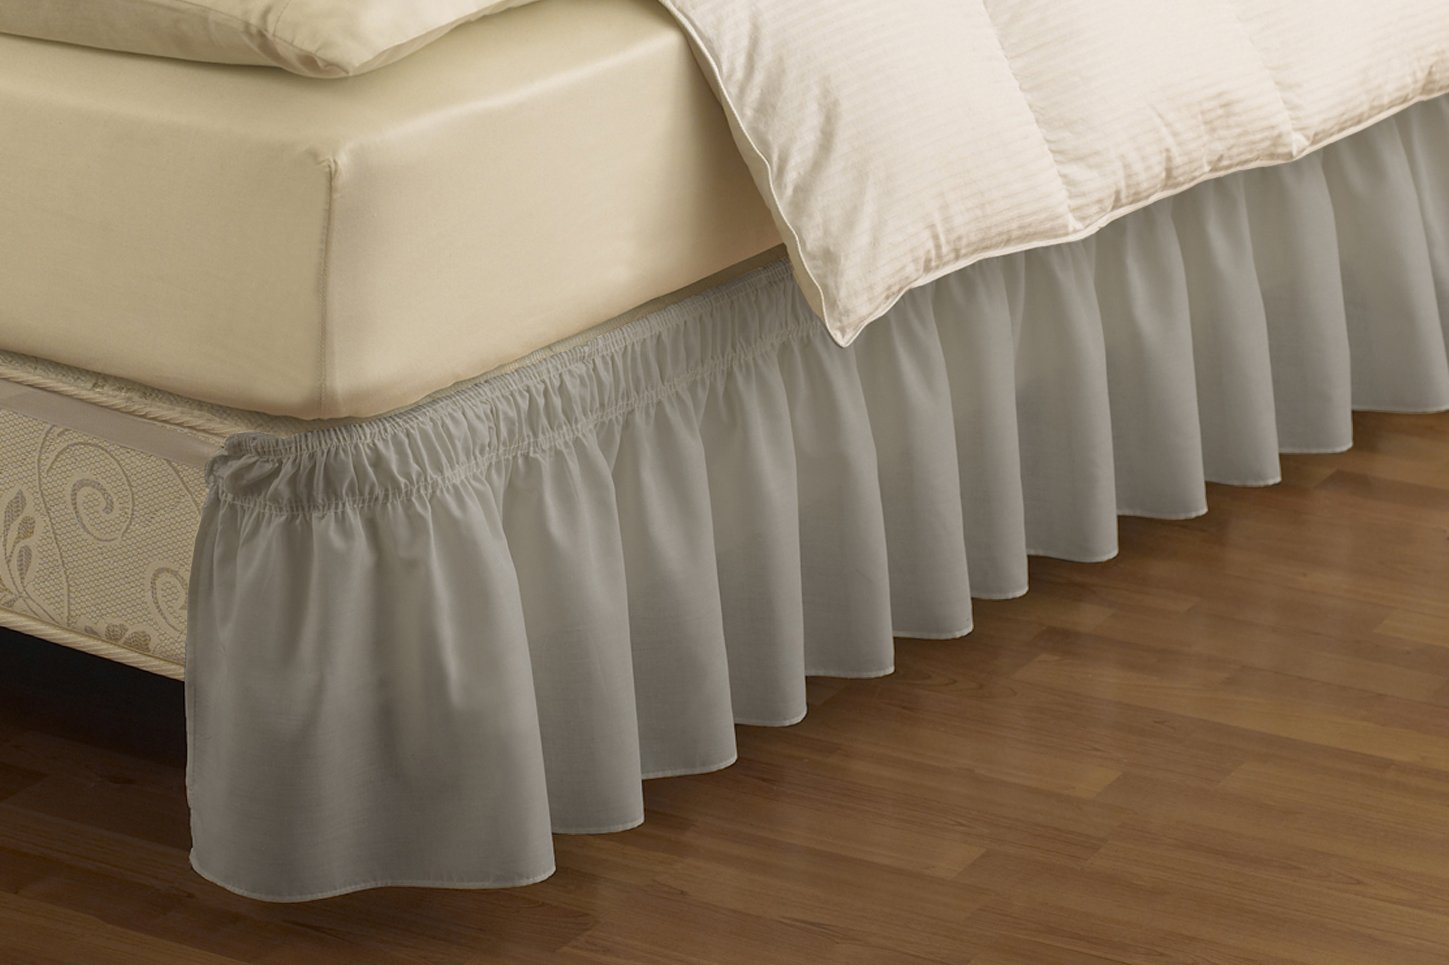 Easy Fit Wrap Around Solid Ruffled Bed Skirt, Queen/King, Grey Ellery Homestyles 11577BEDDQKGGRE